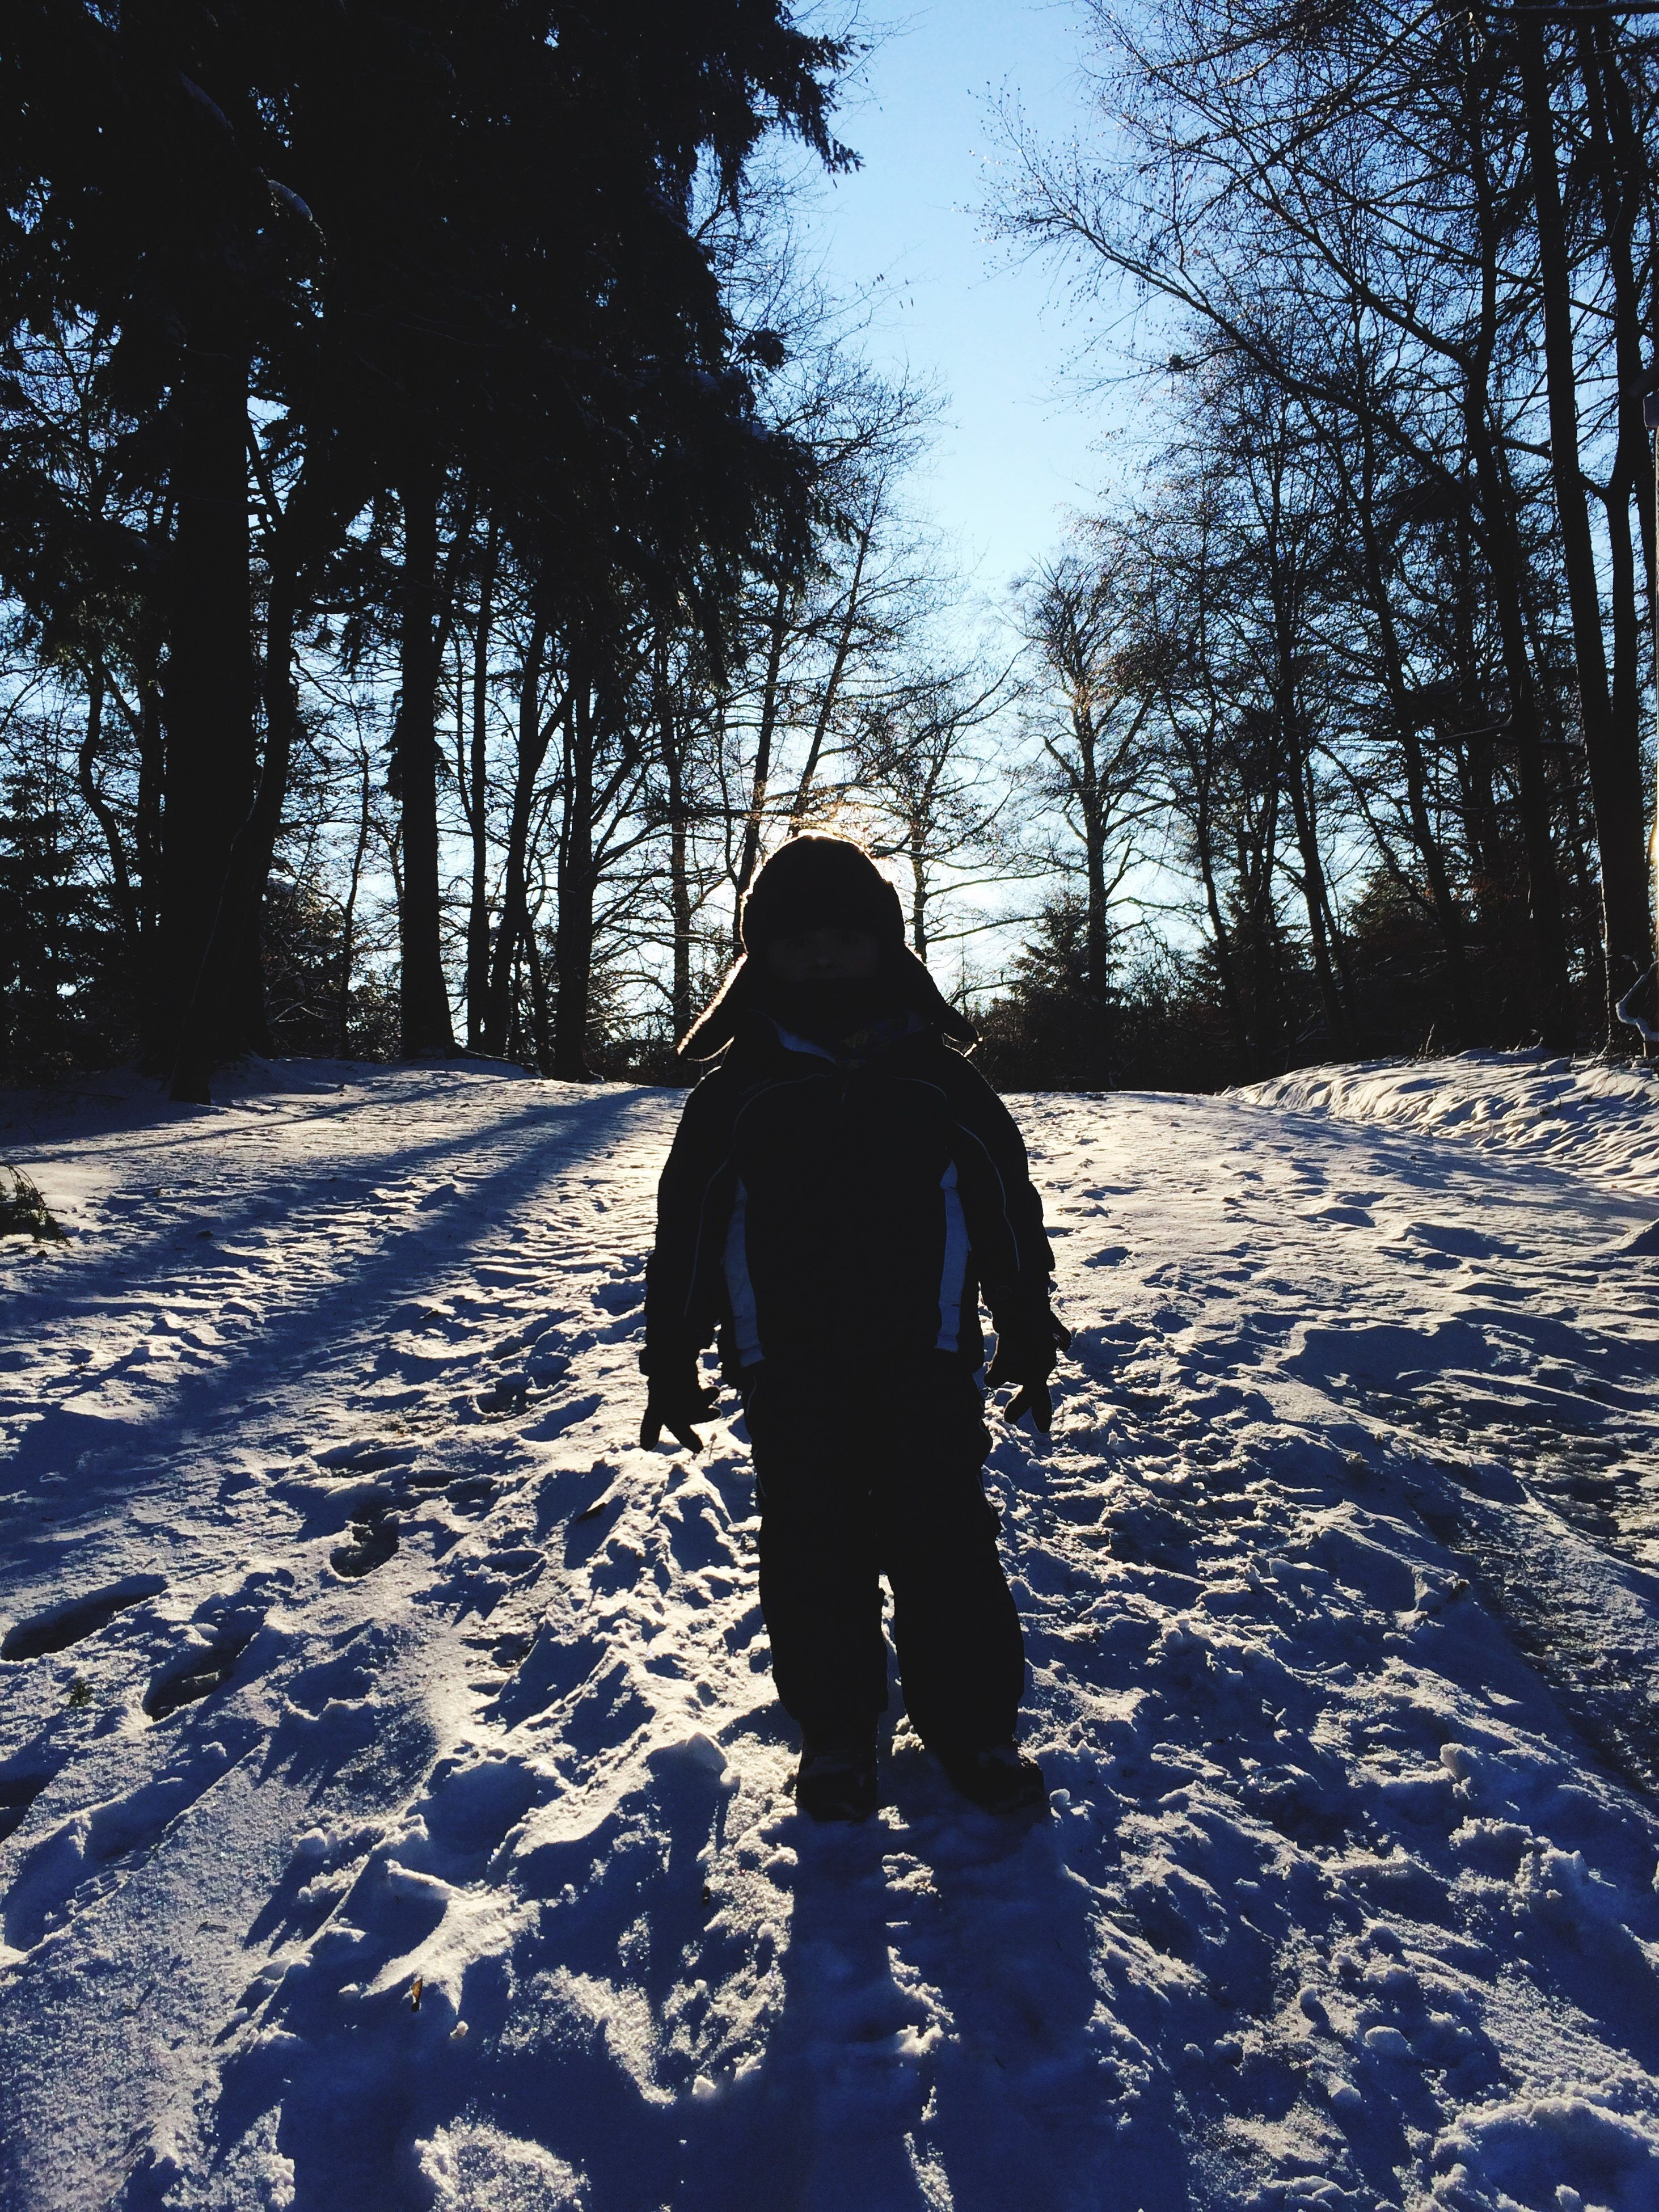 winter, snow, cold temperature, tree, rear view, season, lifestyles, full length, leisure activity, silhouette, walking, shadow, tranquility, nature, standing, weather, tree trunk, warm clothing